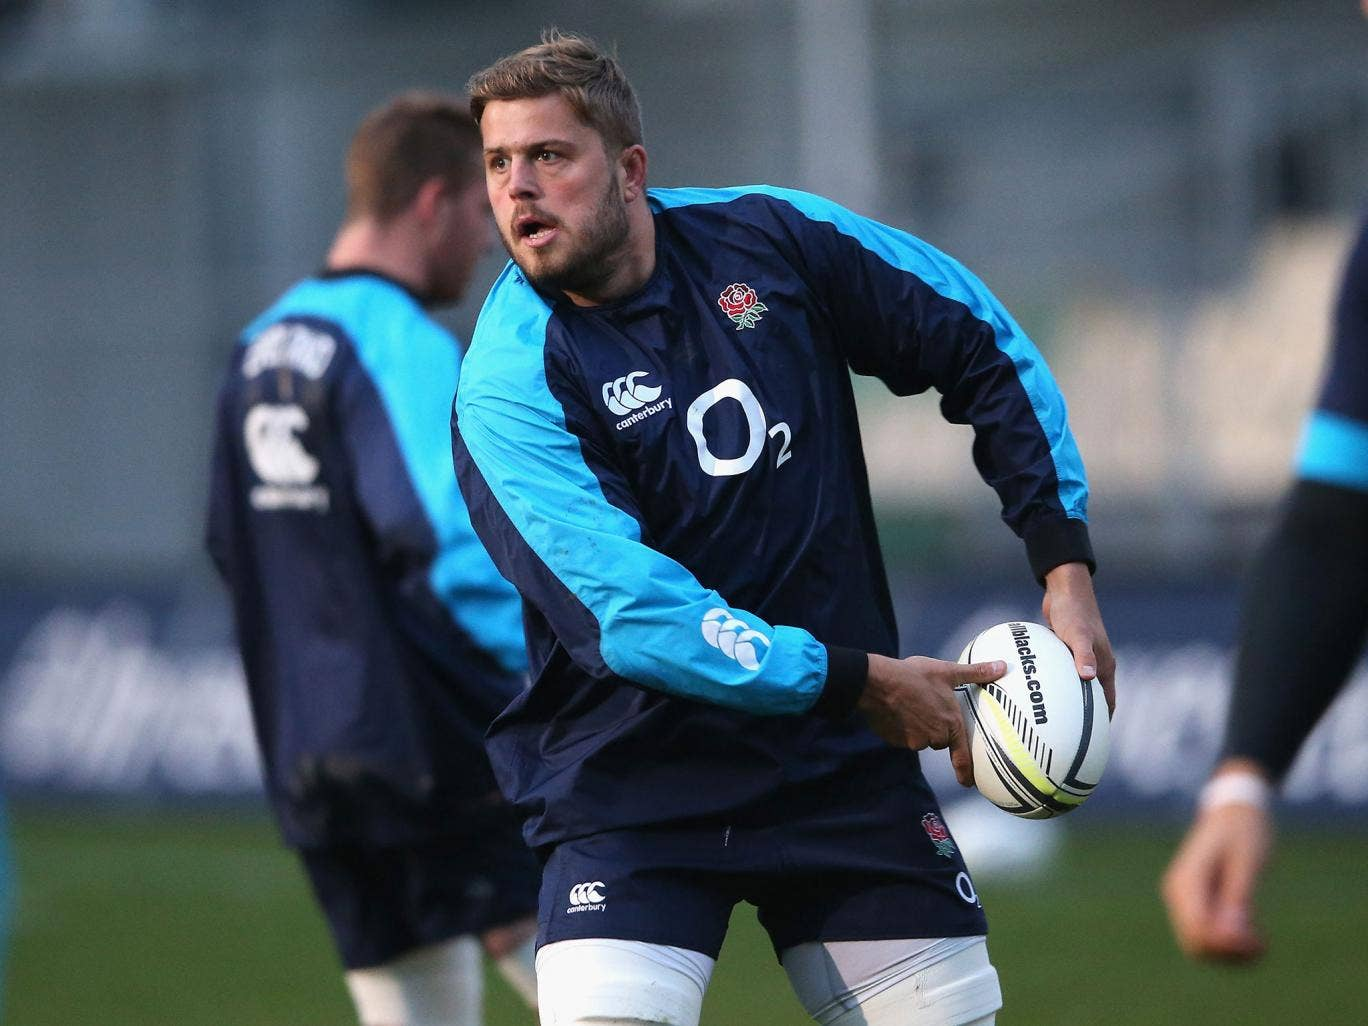 Ed Slater will captain England in the midweek match against the Crusaders